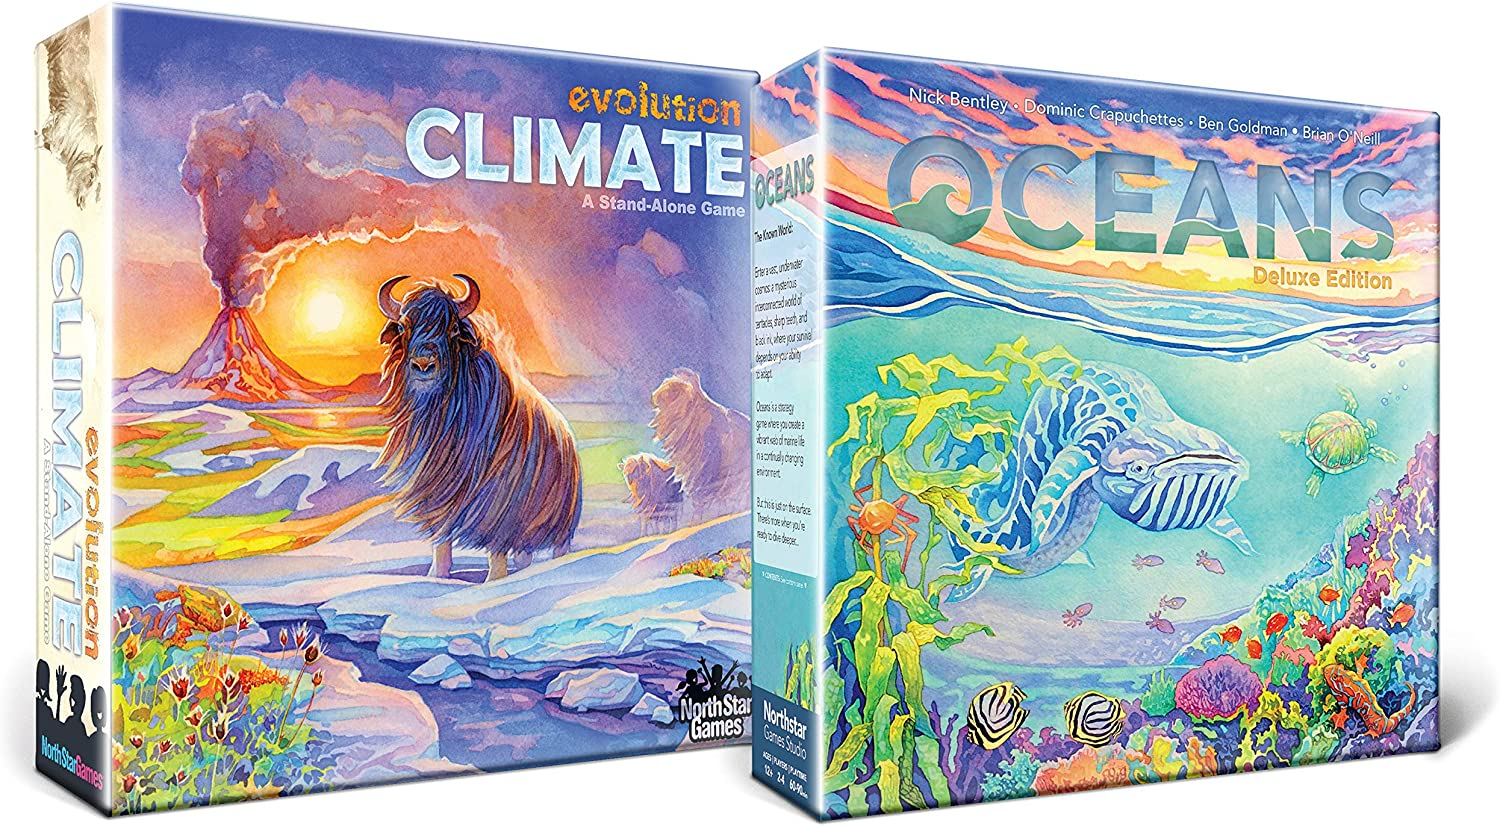 North Star Games Evolution: Climate Game and Oceans Bundle Award-Winning Strategy Games   Evolve You Species; Avoid Predators, Weather Changes and The Deep, Dark Ocean